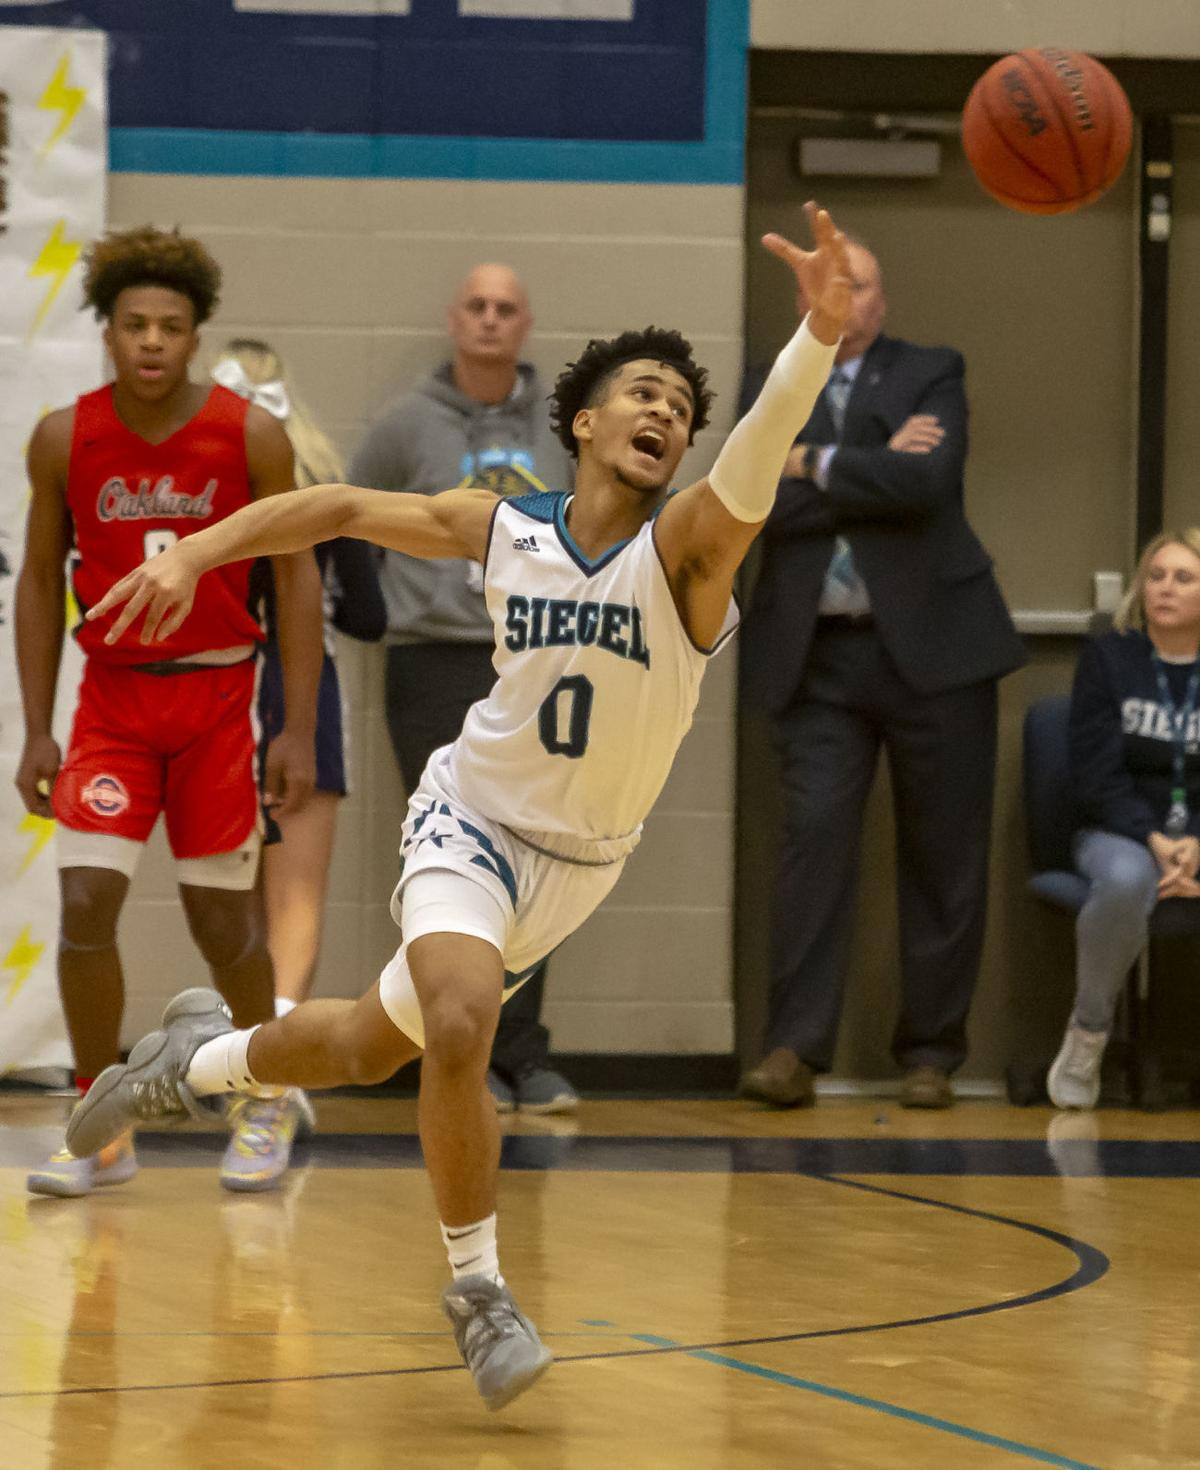 Siegel boys whip District 7 unbeaten Oakland 58-38